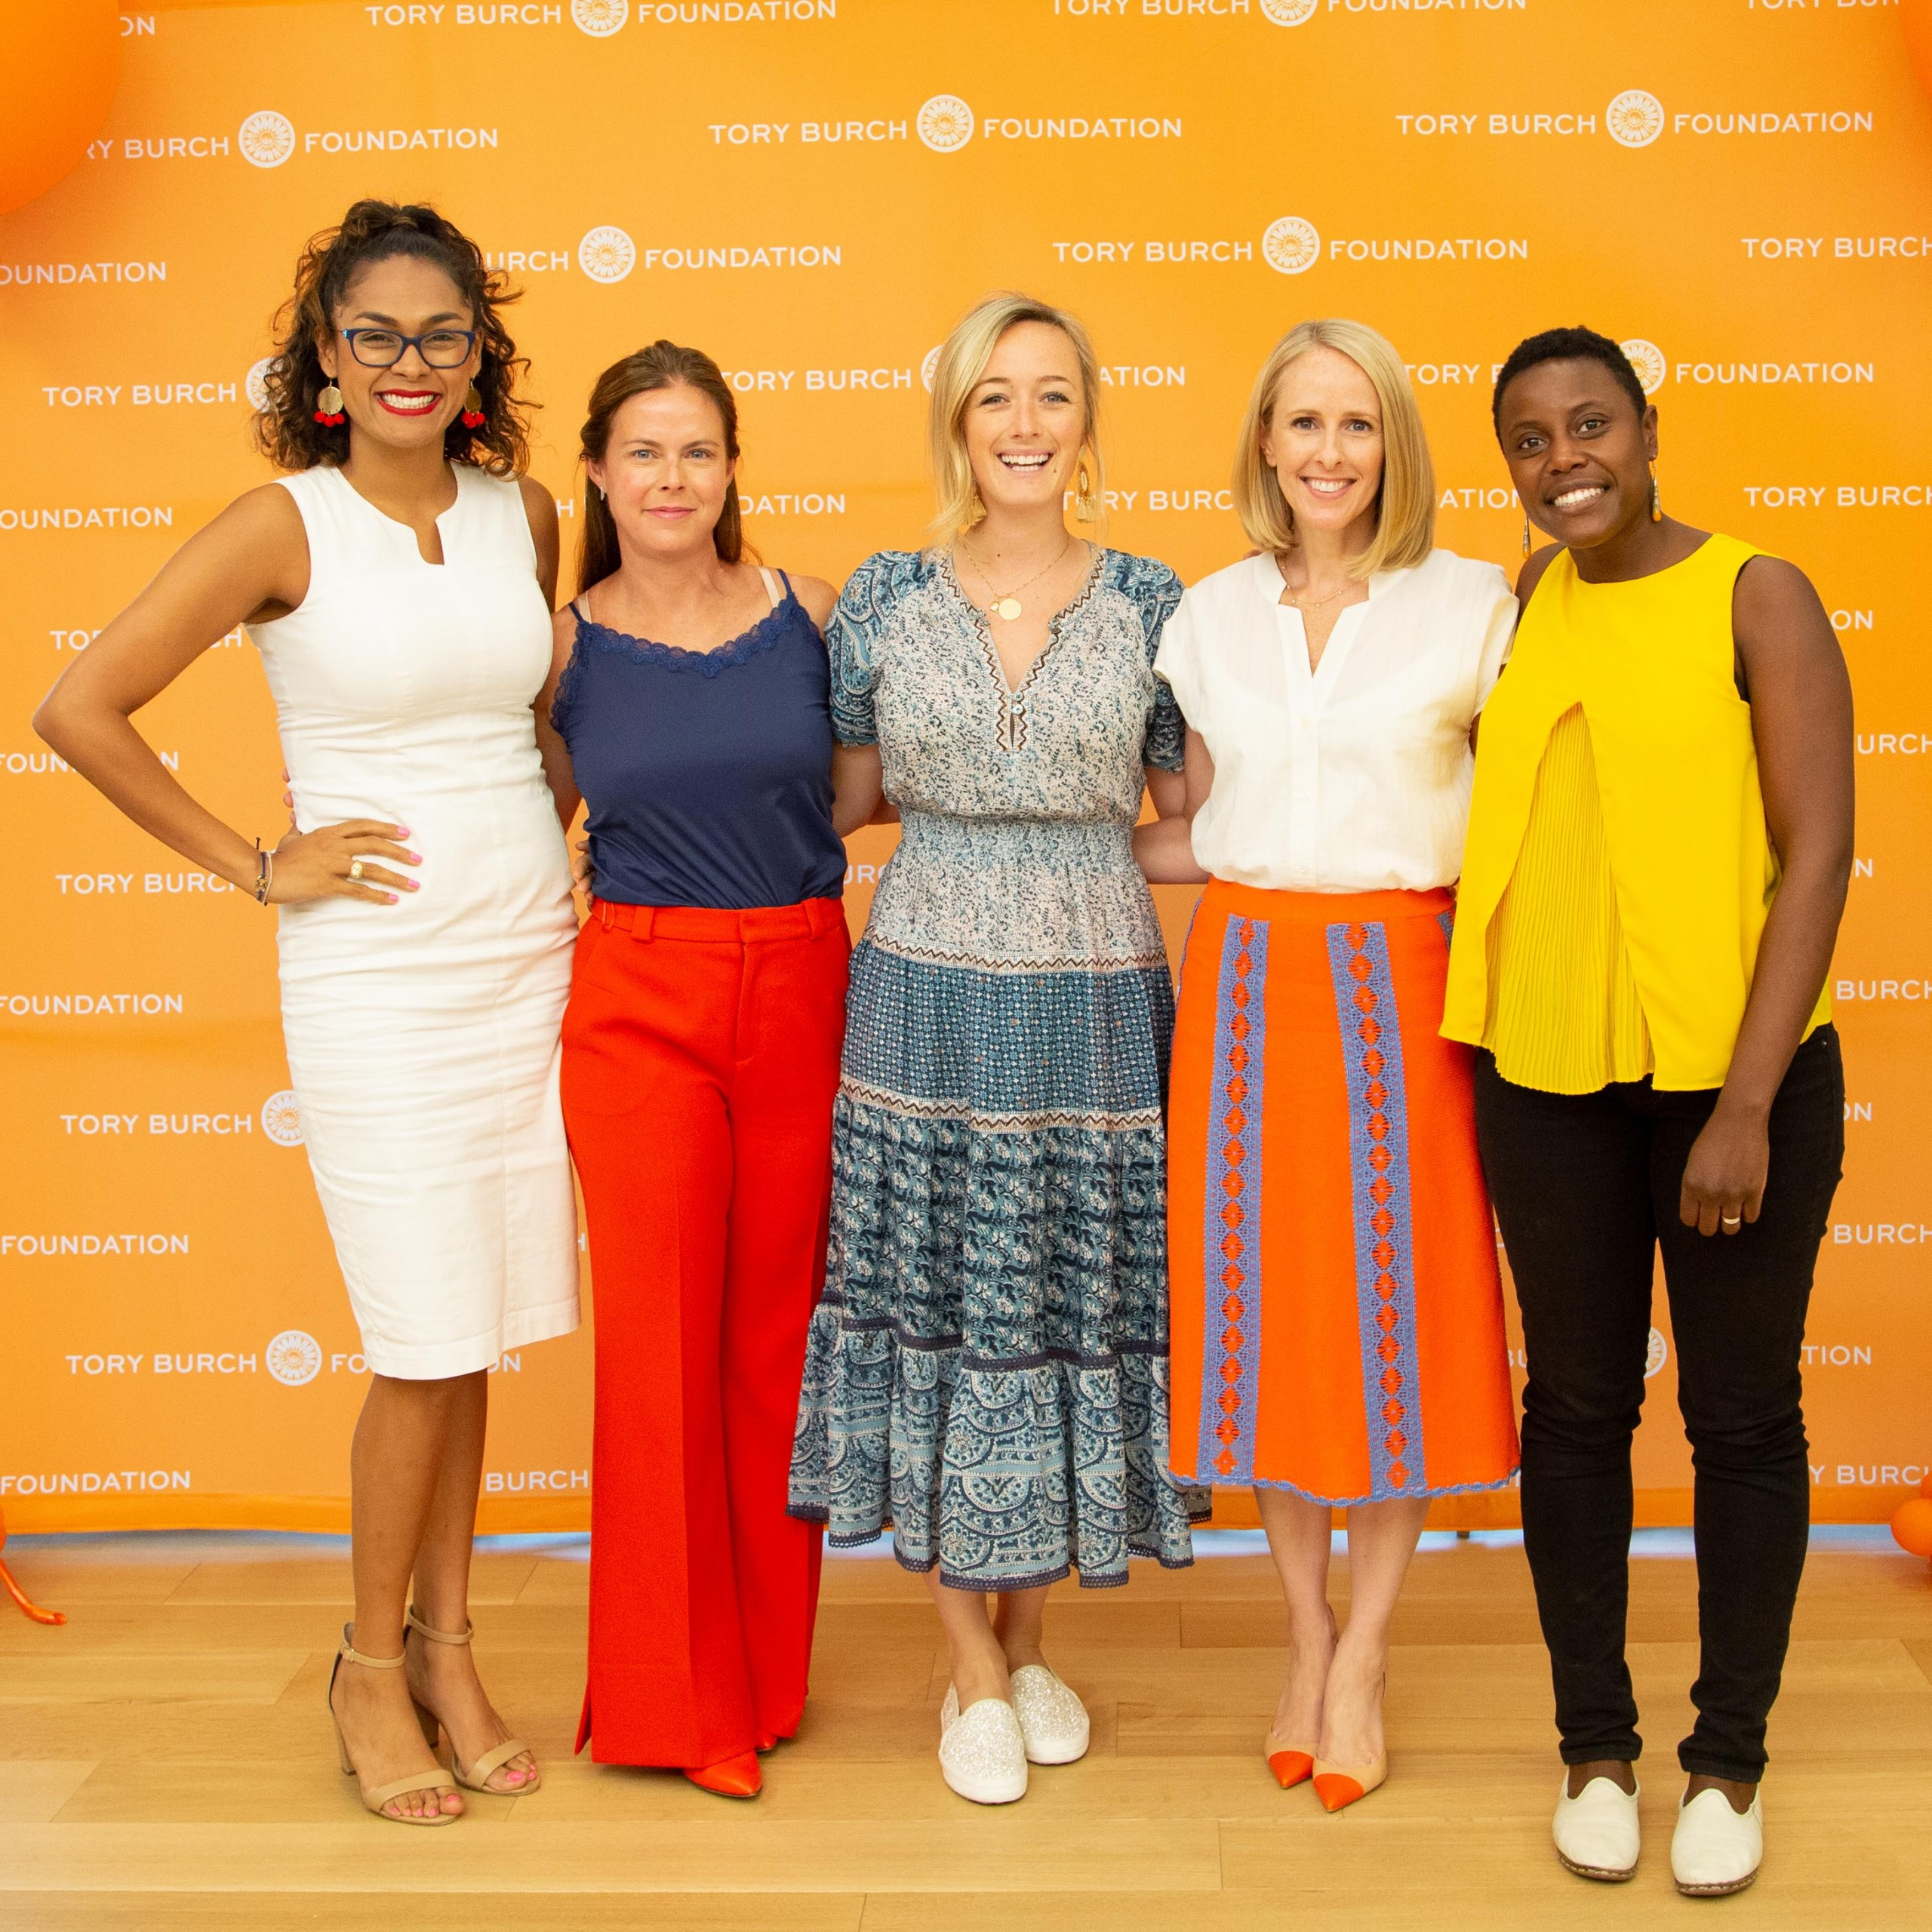 Jennifer Hunt's Week with the Tory Burch Foundation